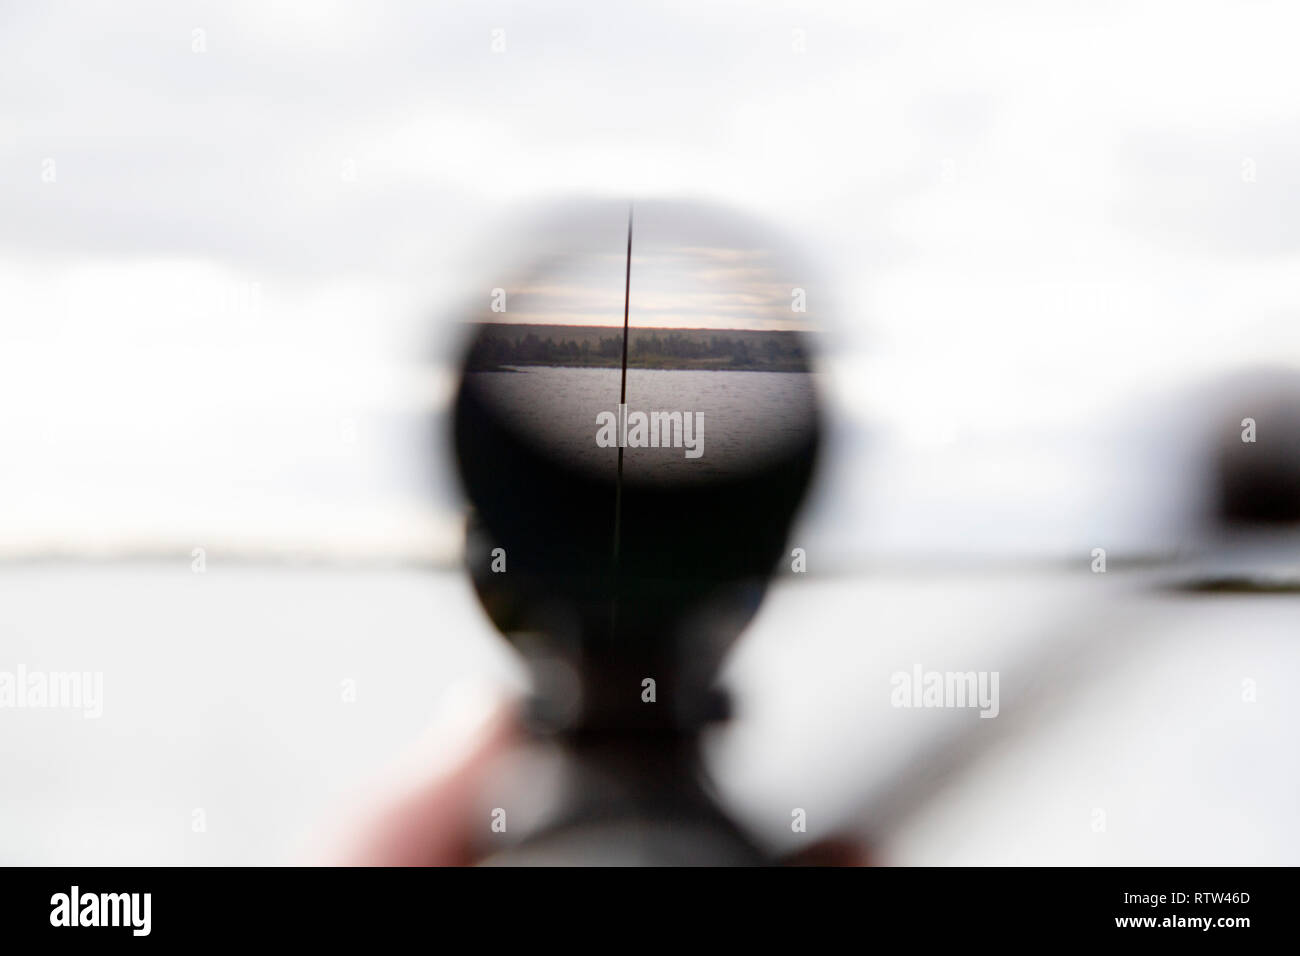 View through the telescopic sight of a hunting rifle. The rifle points into the distance. - Stock Image